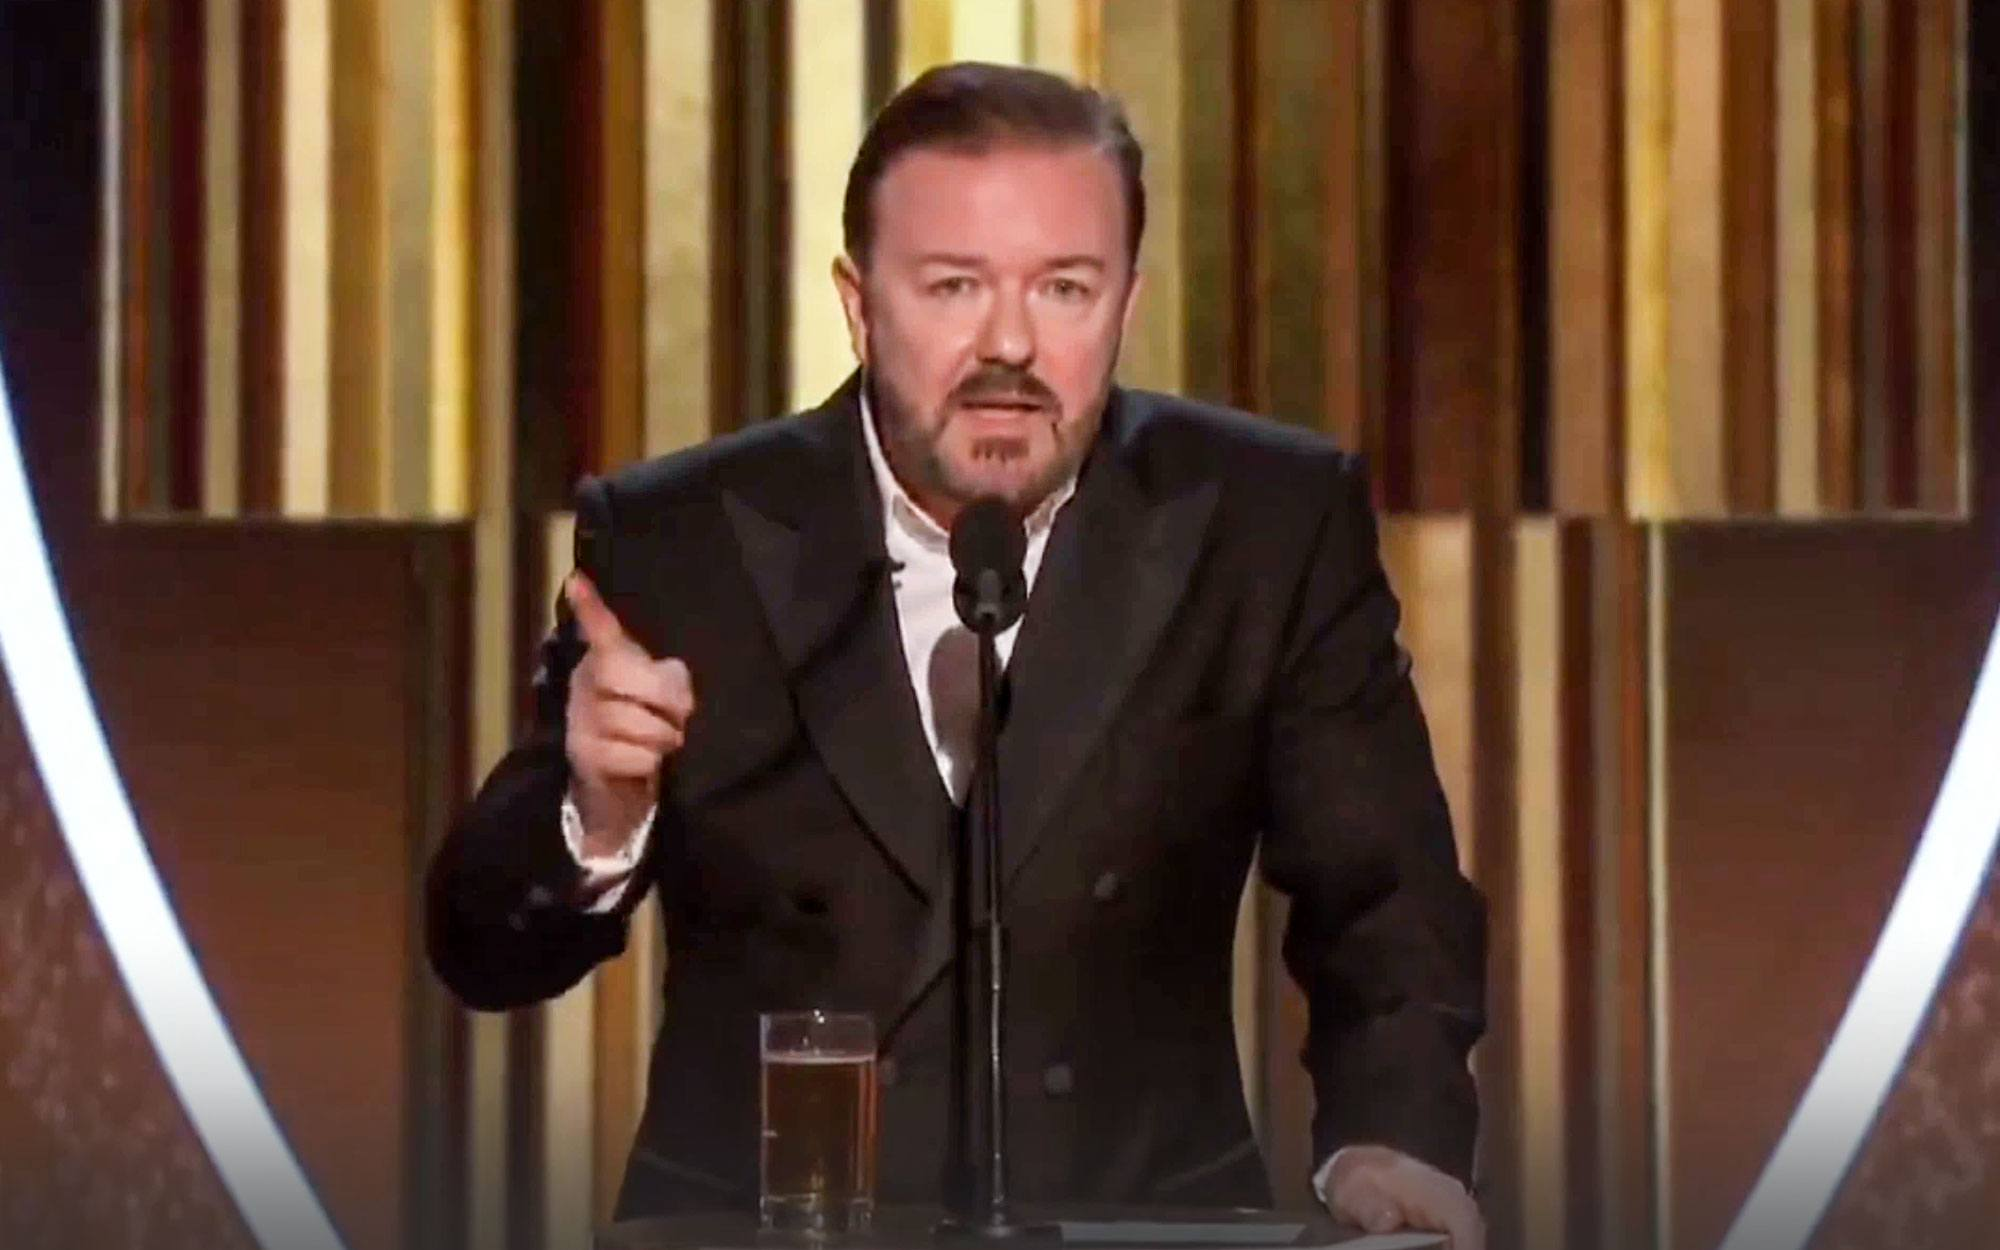 Ricky Gervais has one final message for Hollywood elites after Oscar ratings crash to lowest in history